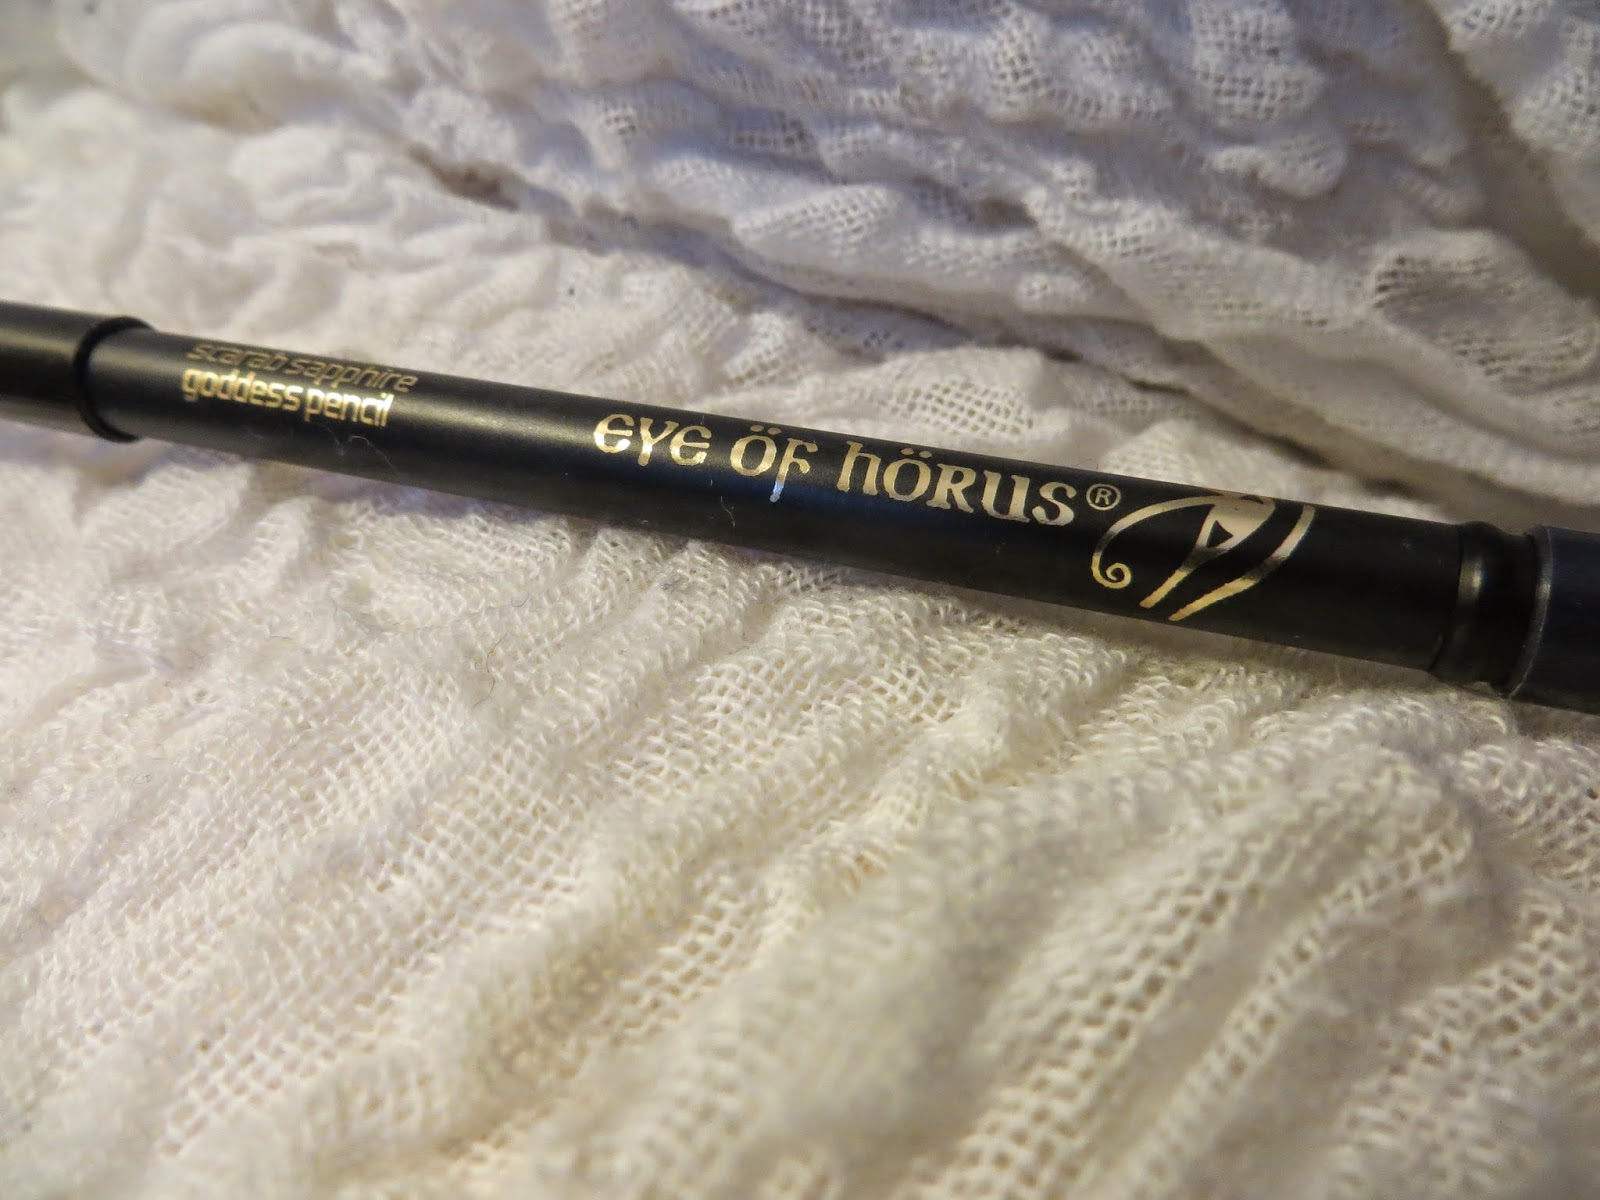 Eye of horus, eye of horus eye pencil, sapphire eye pencil, eye of horus swatch, beauty review, makeup review